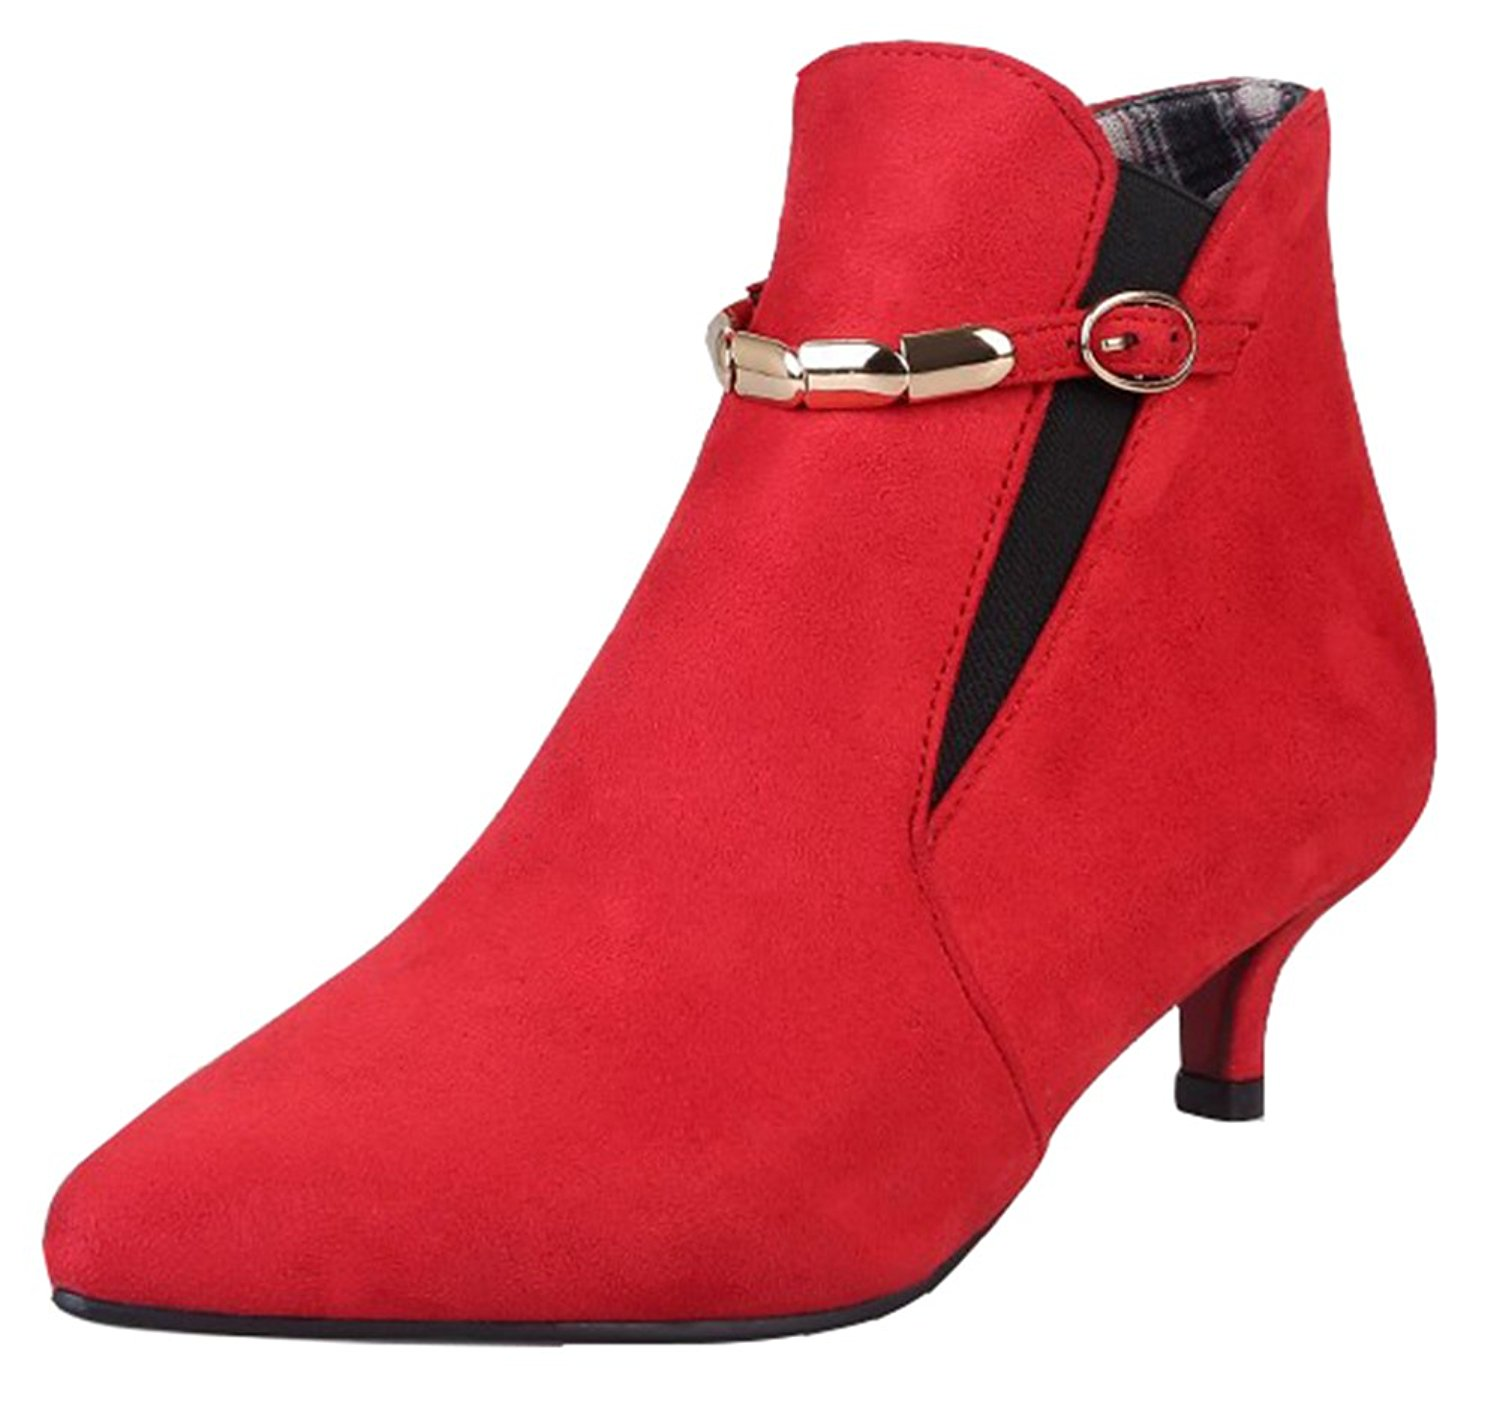 eba5f798b49 Get Quotations · SHOWHOW Women s Cute Pointed Toe Kitten Heel Elastic Ankle  Booties